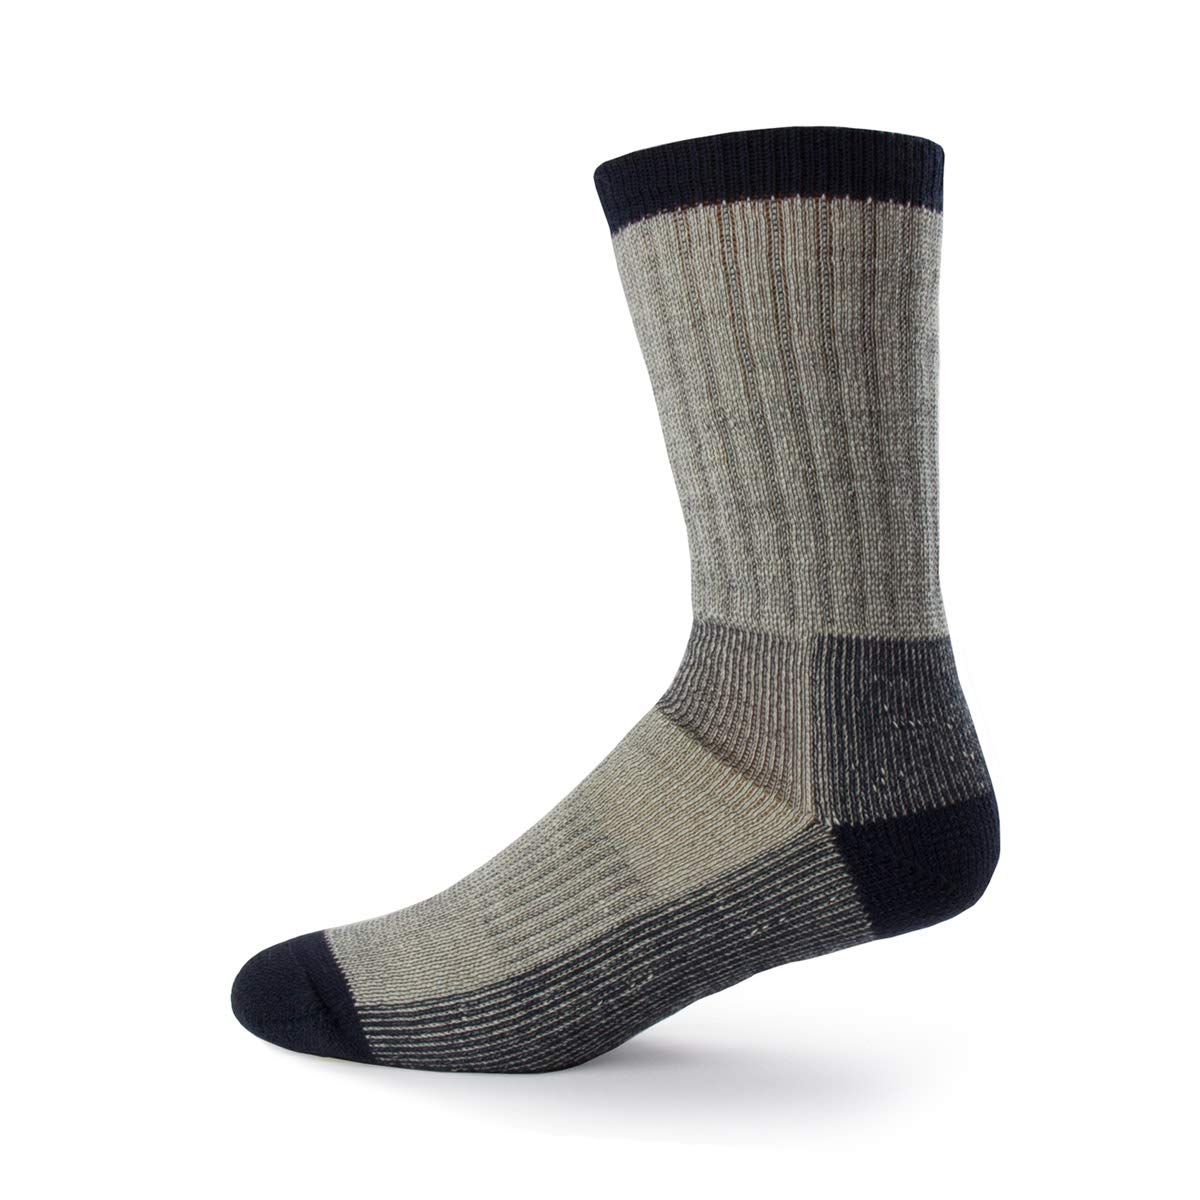 Minus33 Merino Wool Day Hiker Sock, Denim Heather, Small by Minus33 Merino Wool